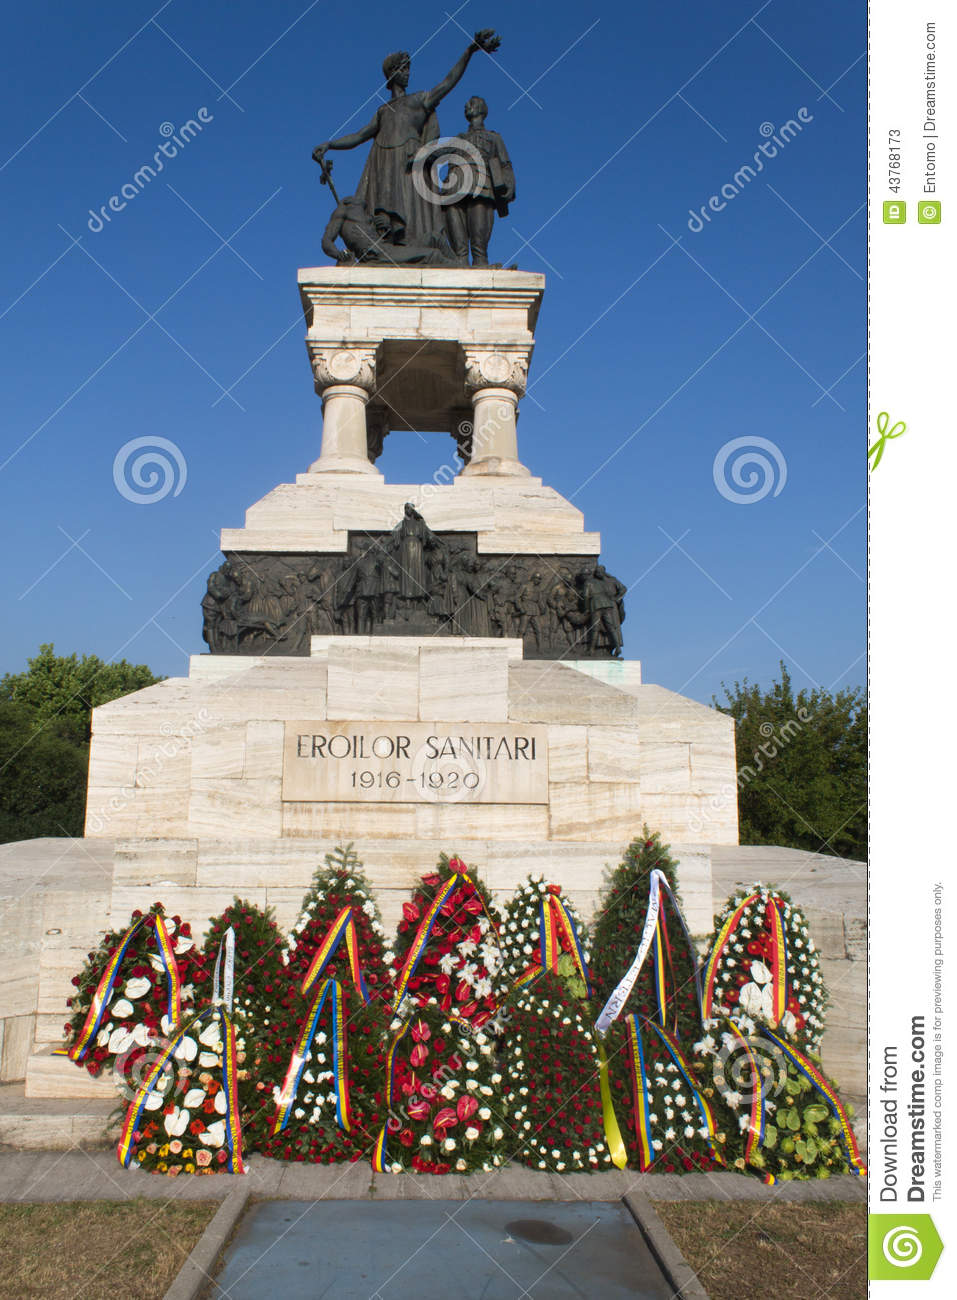 Wreaths at the Sanitary Heroes Monument